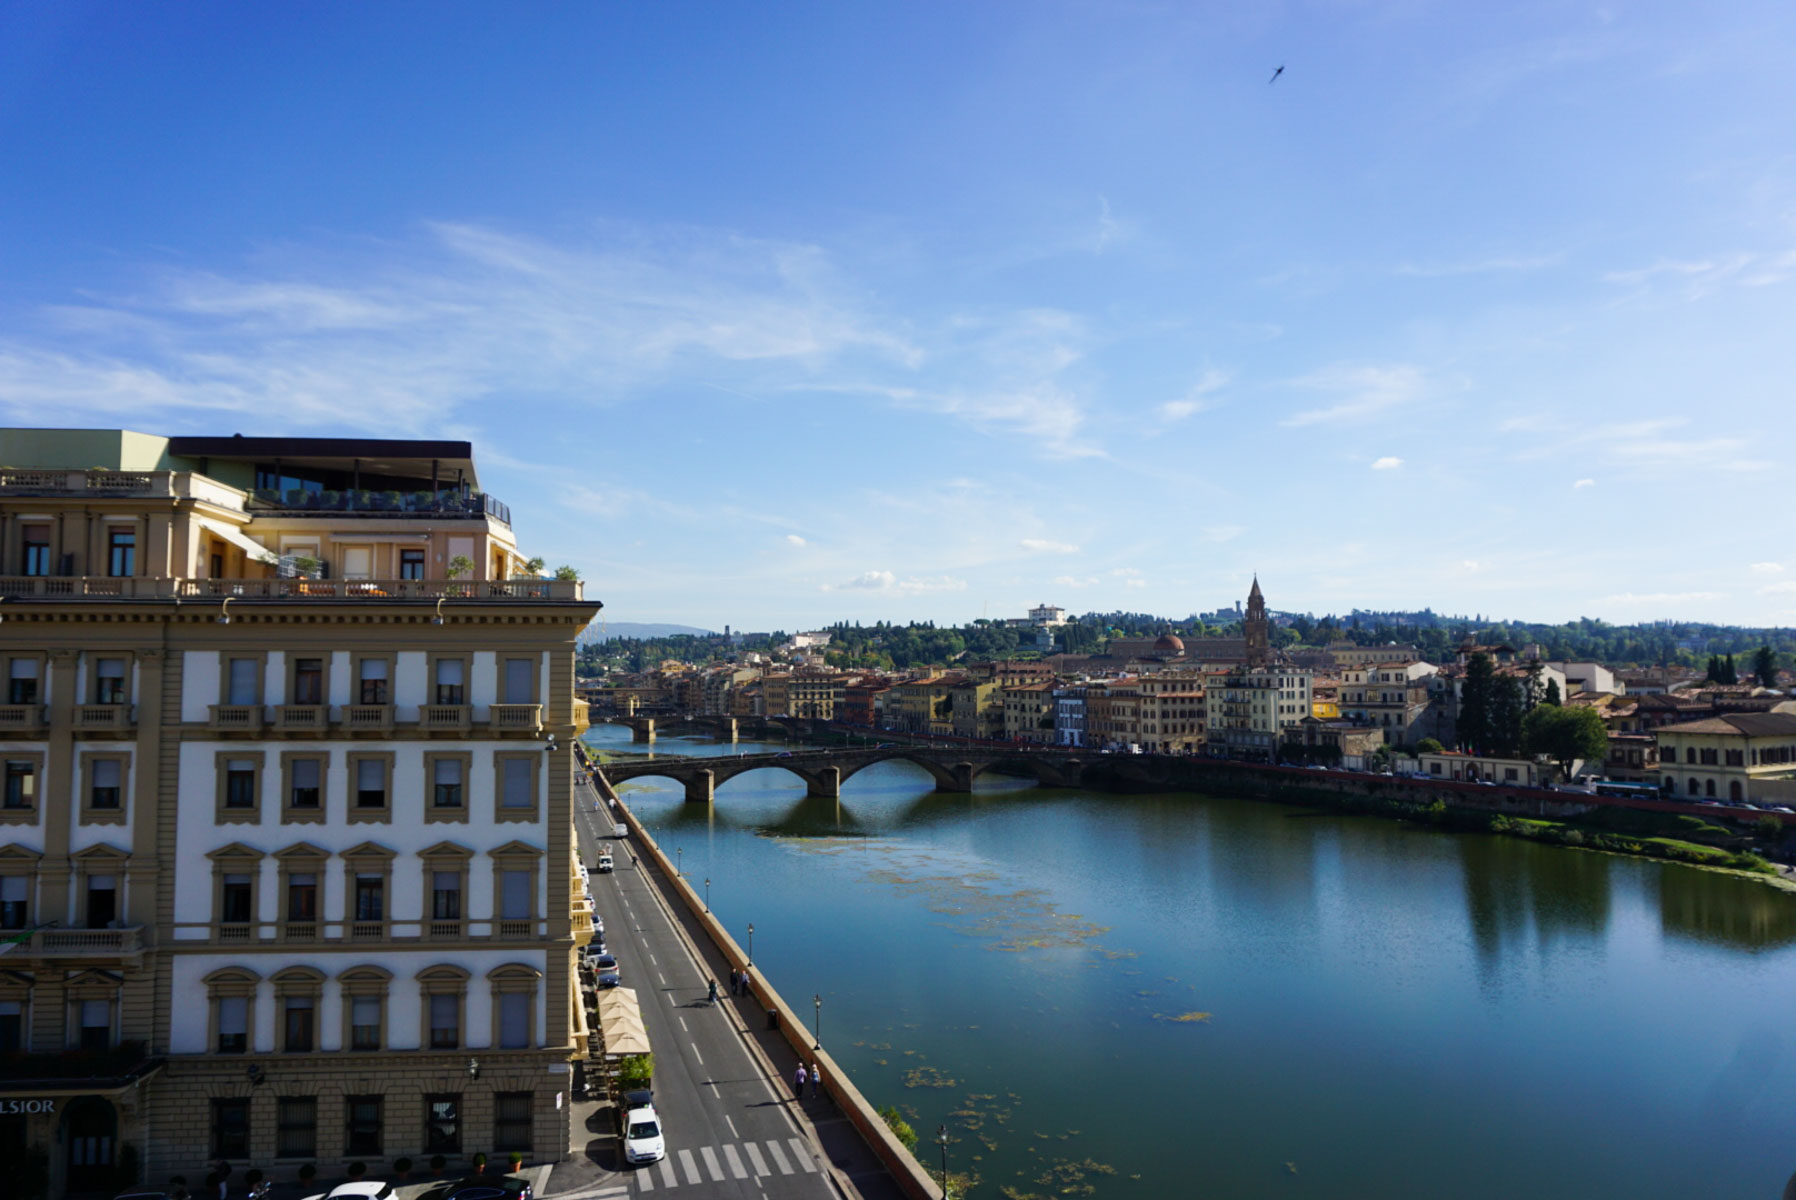 travel-to-italy-tips-with-Addie-Bell_Florence-Italy-9848.jpg